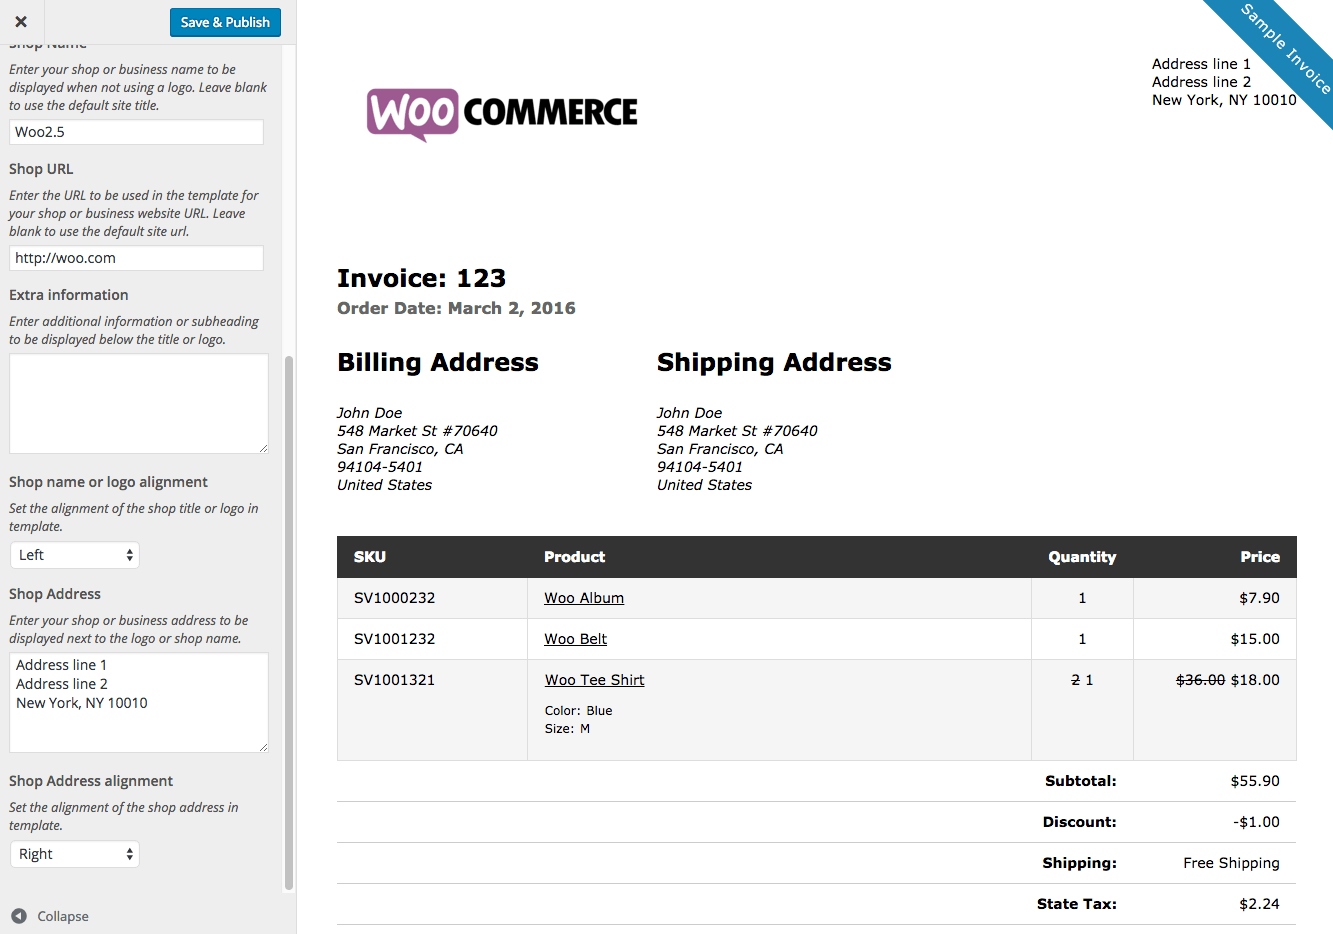 Coachoutletonlineplusus  Nice Woocommerce Print Invoices Amp Packing Lists  Woocommerce Docs With Lovable Woocommerce Print Invoices  Packing Lists Customizer With Charming Grocery Receipt Scanner Also What Is The Uscis Form I Notice Of Receipt In Addition Vehicle Sales Receipt And Disable Read Receipts As Well As Copy Of Personal Property Tax Receipt Missouri Additionally Printable Cash Receipts From Docswoocommercecom With Coachoutletonlineplusus  Lovable Woocommerce Print Invoices Amp Packing Lists  Woocommerce Docs With Charming Woocommerce Print Invoices  Packing Lists Customizer And Nice Grocery Receipt Scanner Also What Is The Uscis Form I Notice Of Receipt In Addition Vehicle Sales Receipt From Docswoocommercecom